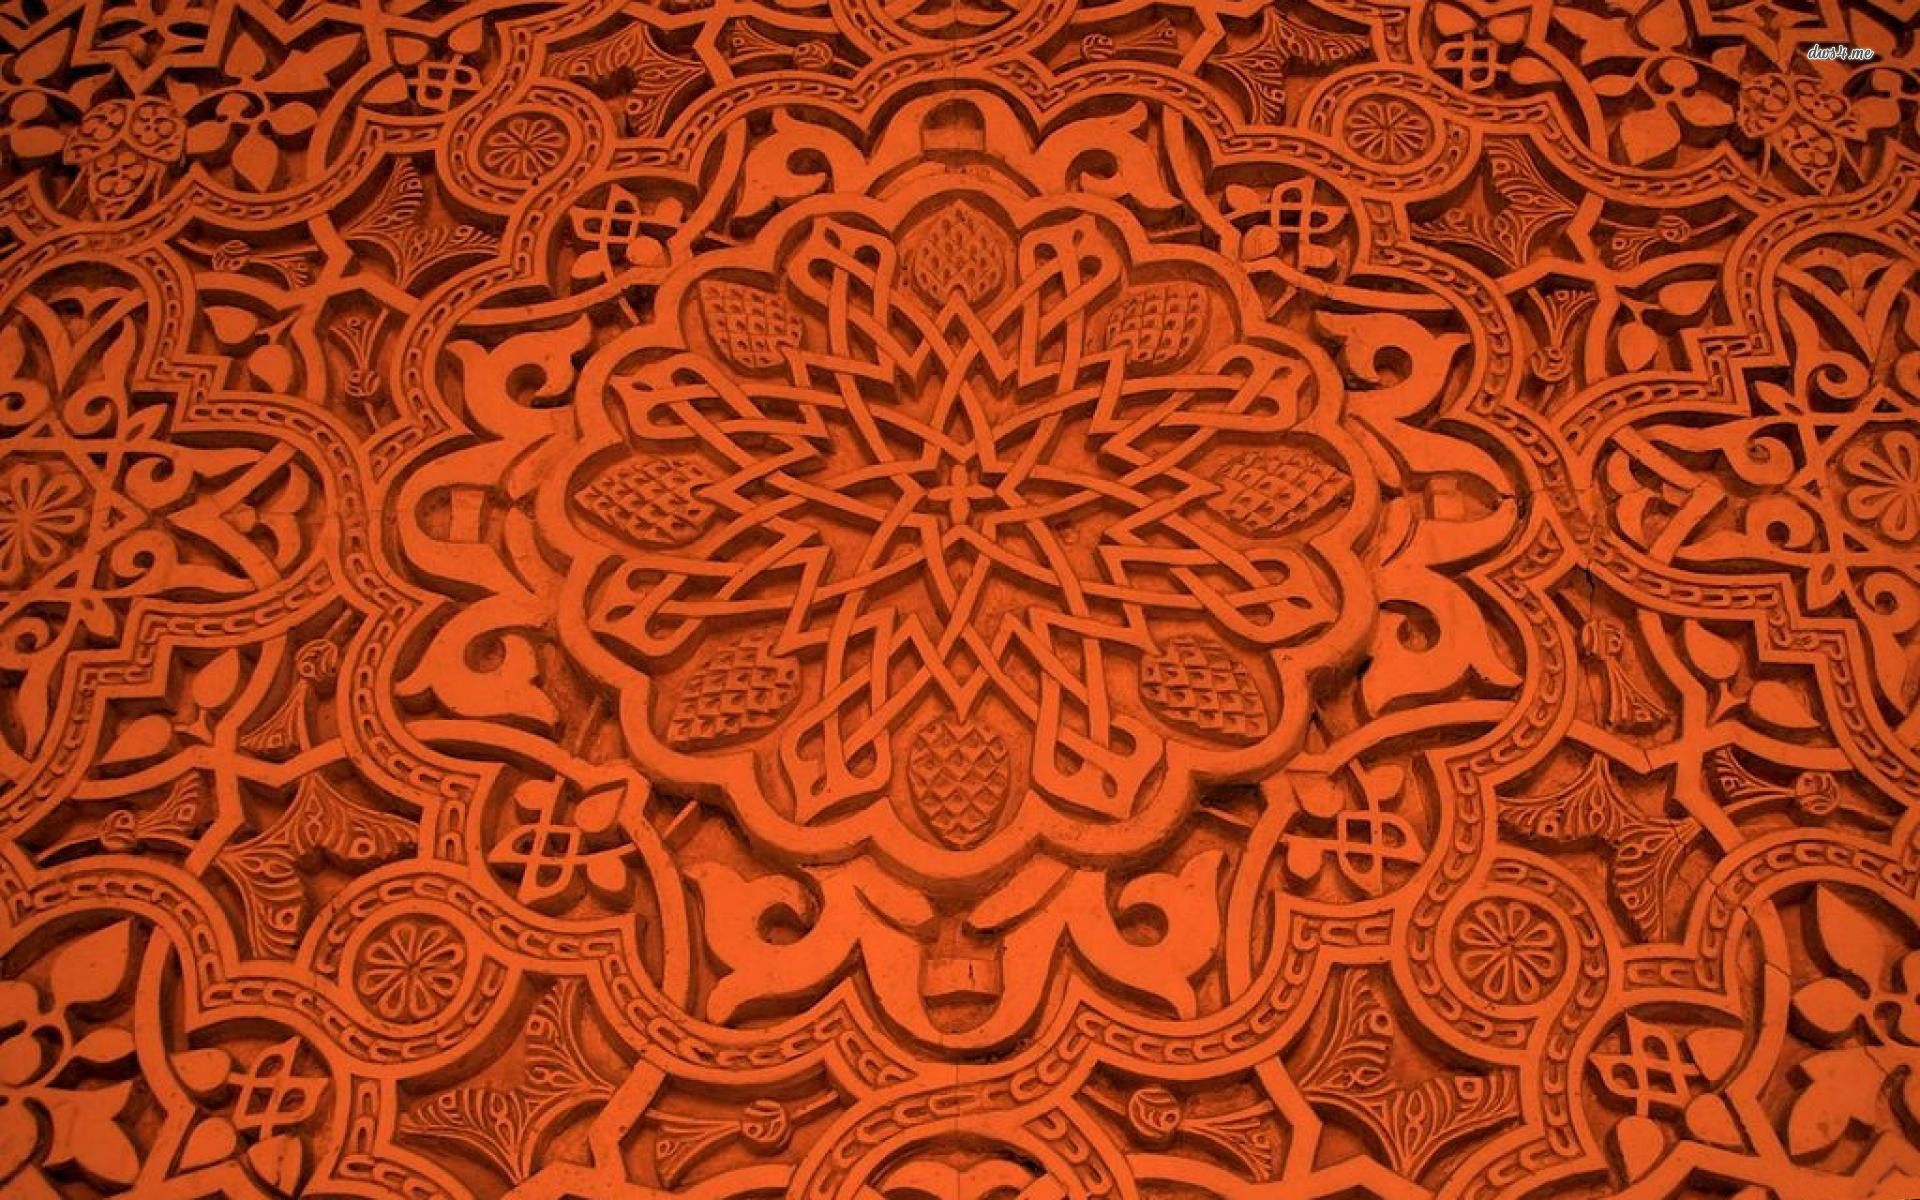 1920x1200 Wallpapers Islam Islamic Architecture Pattern Abstract 1920x1200 ...